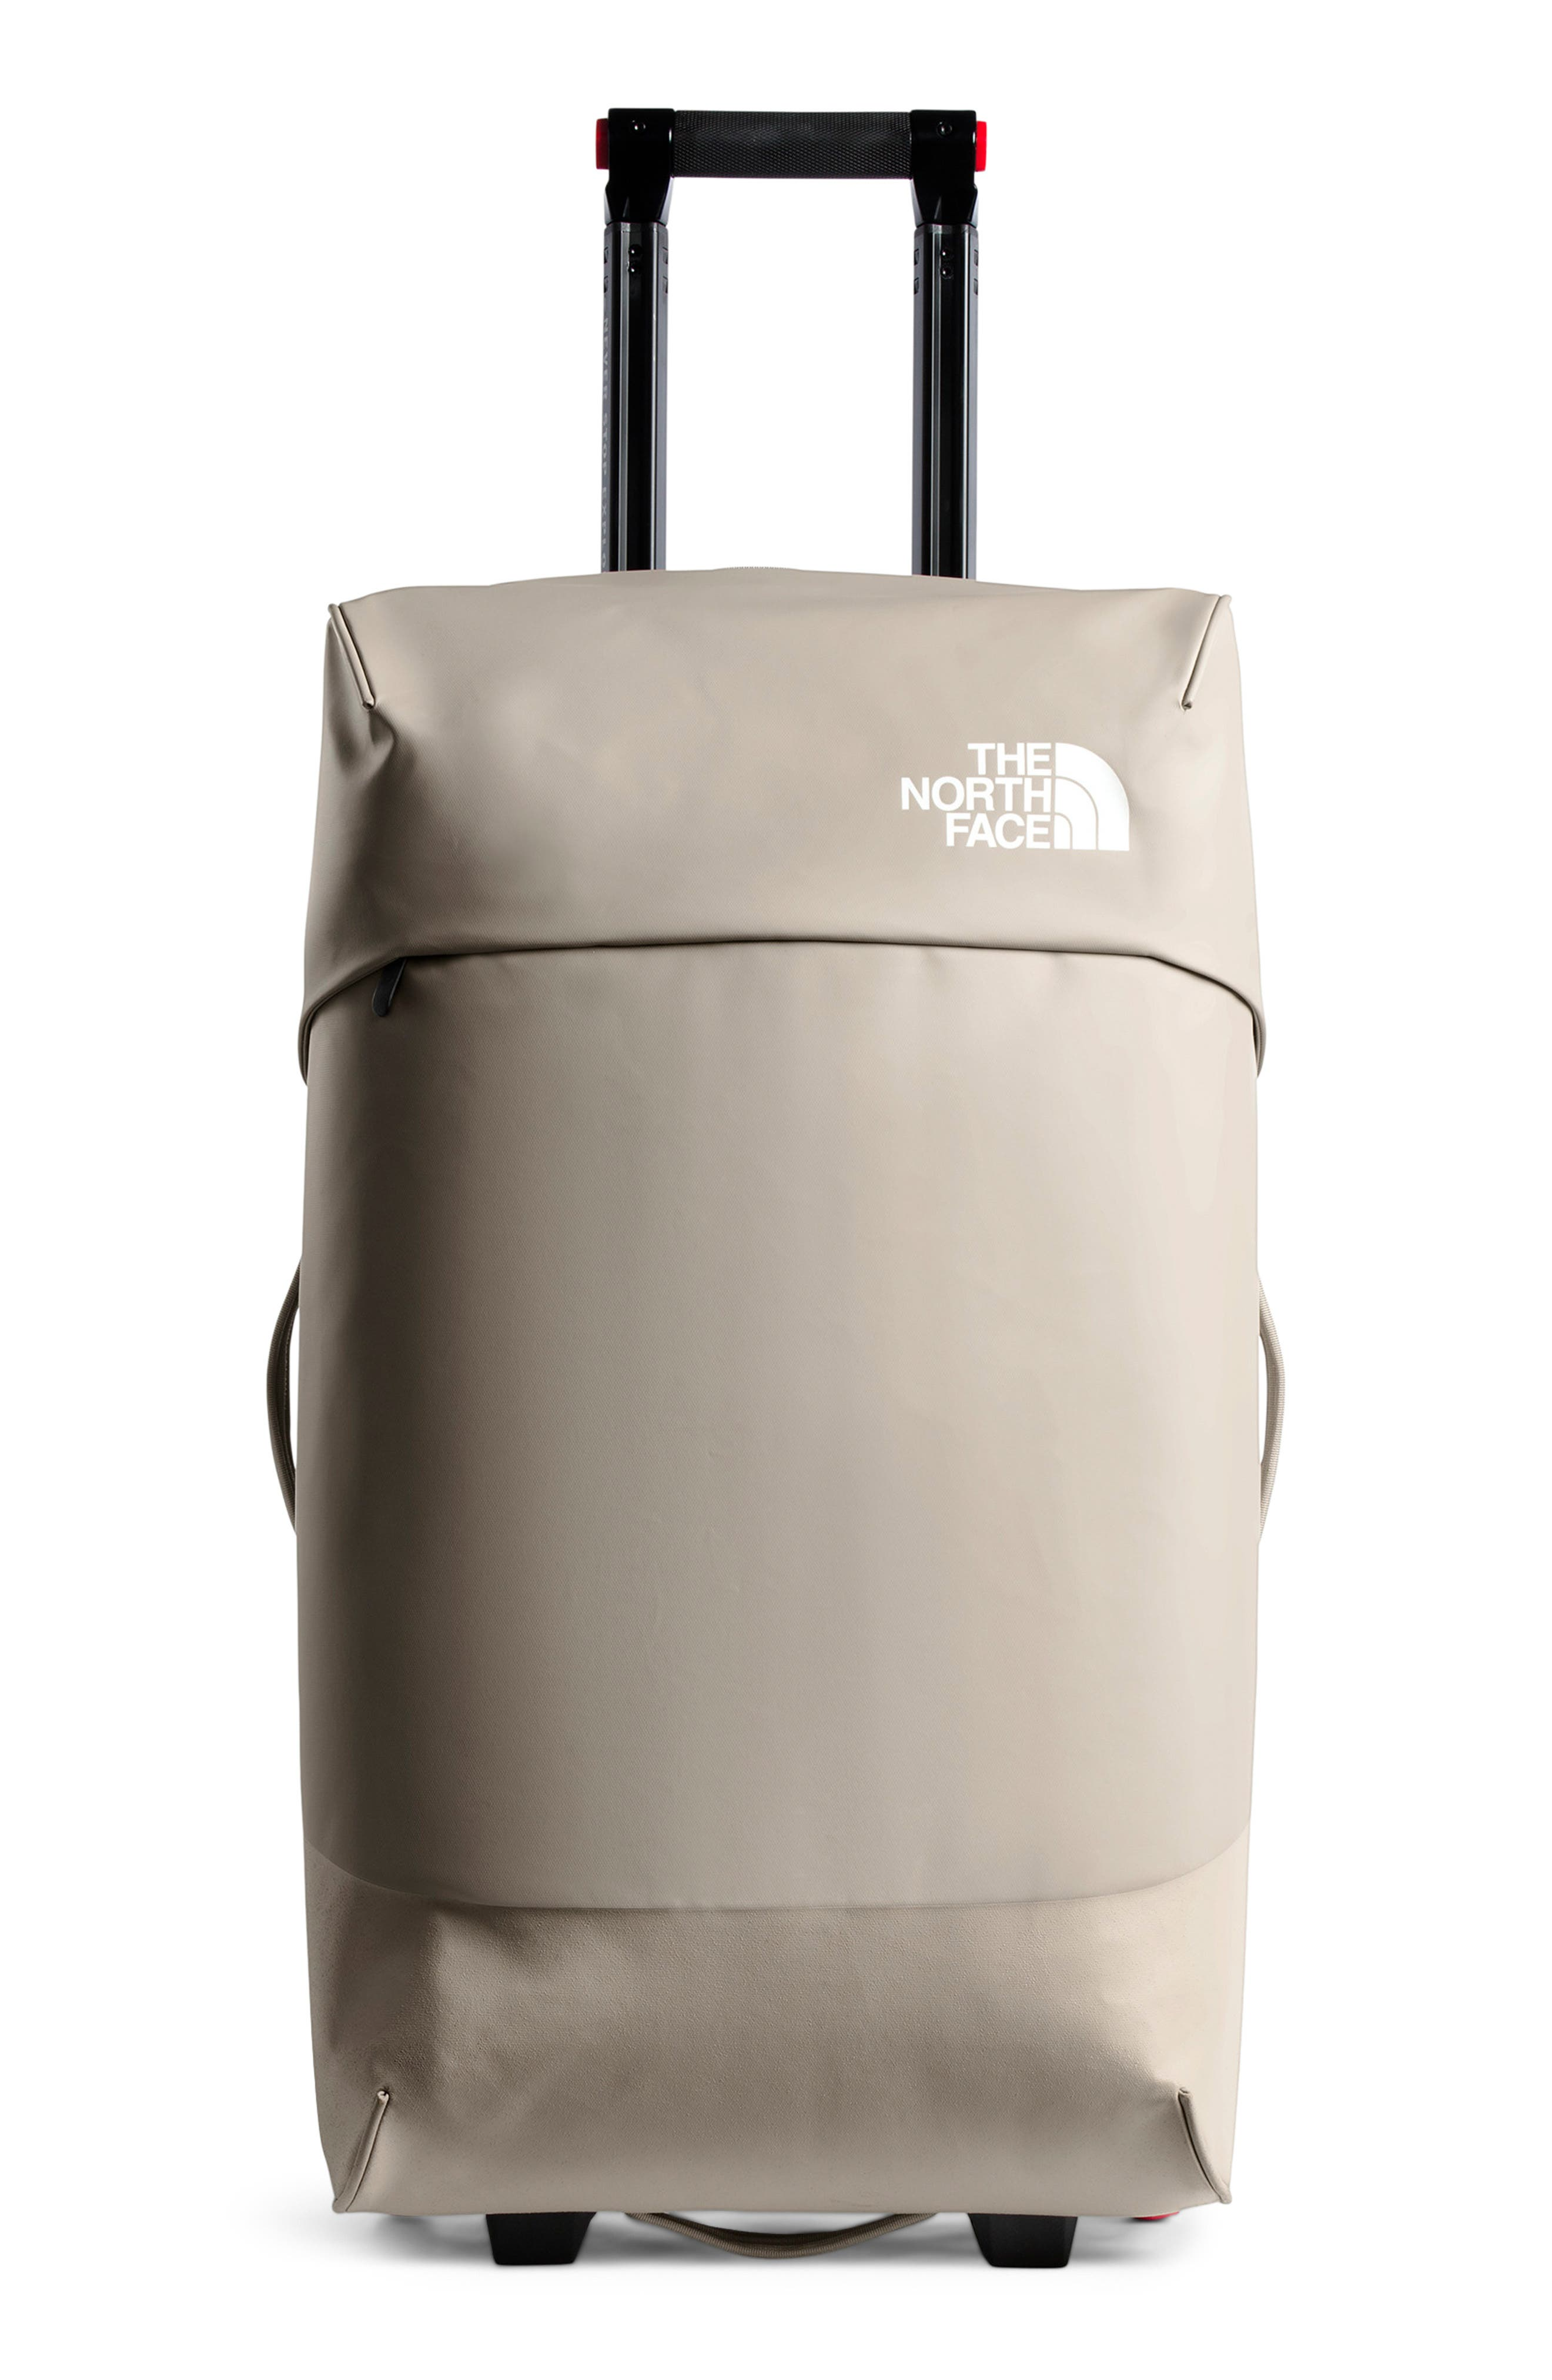 THE NORTH FACE Stratoliner Large Rolling Suitcase, Main, color, SILT GREY/MOONSTRUCK GREY